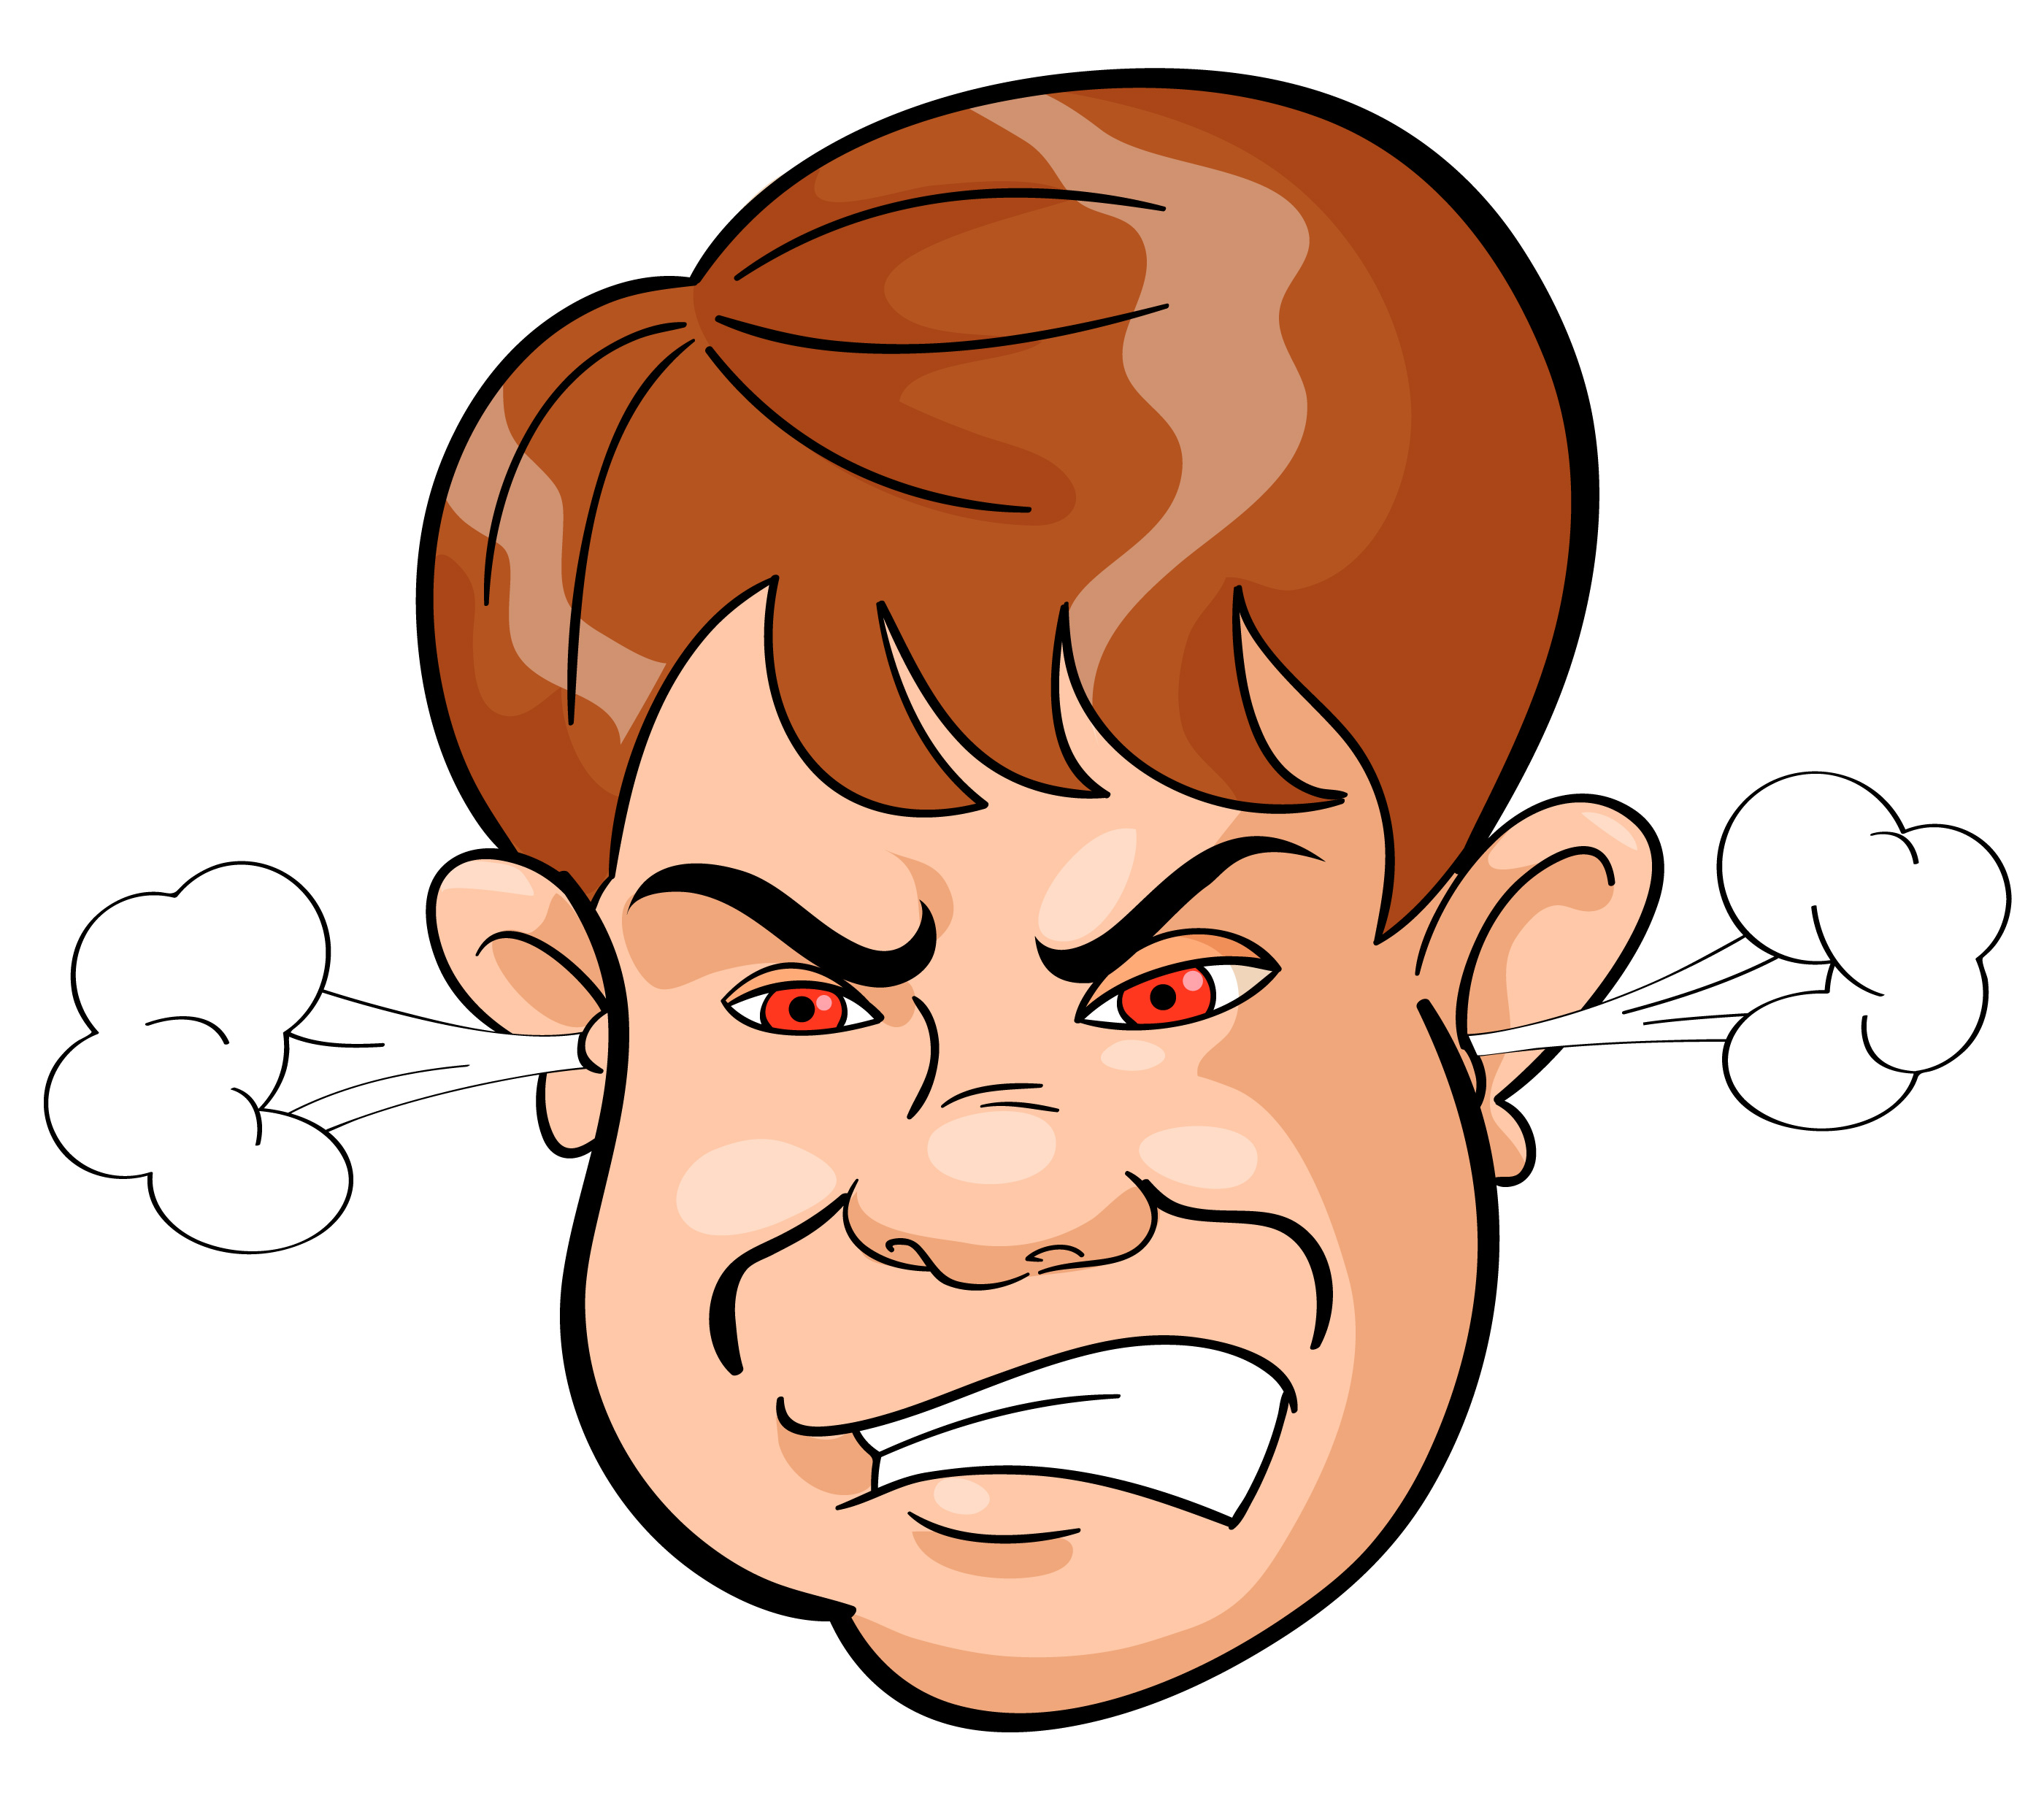 Anger clipart animated Anger Free anger%20clipart Clipart Pictures